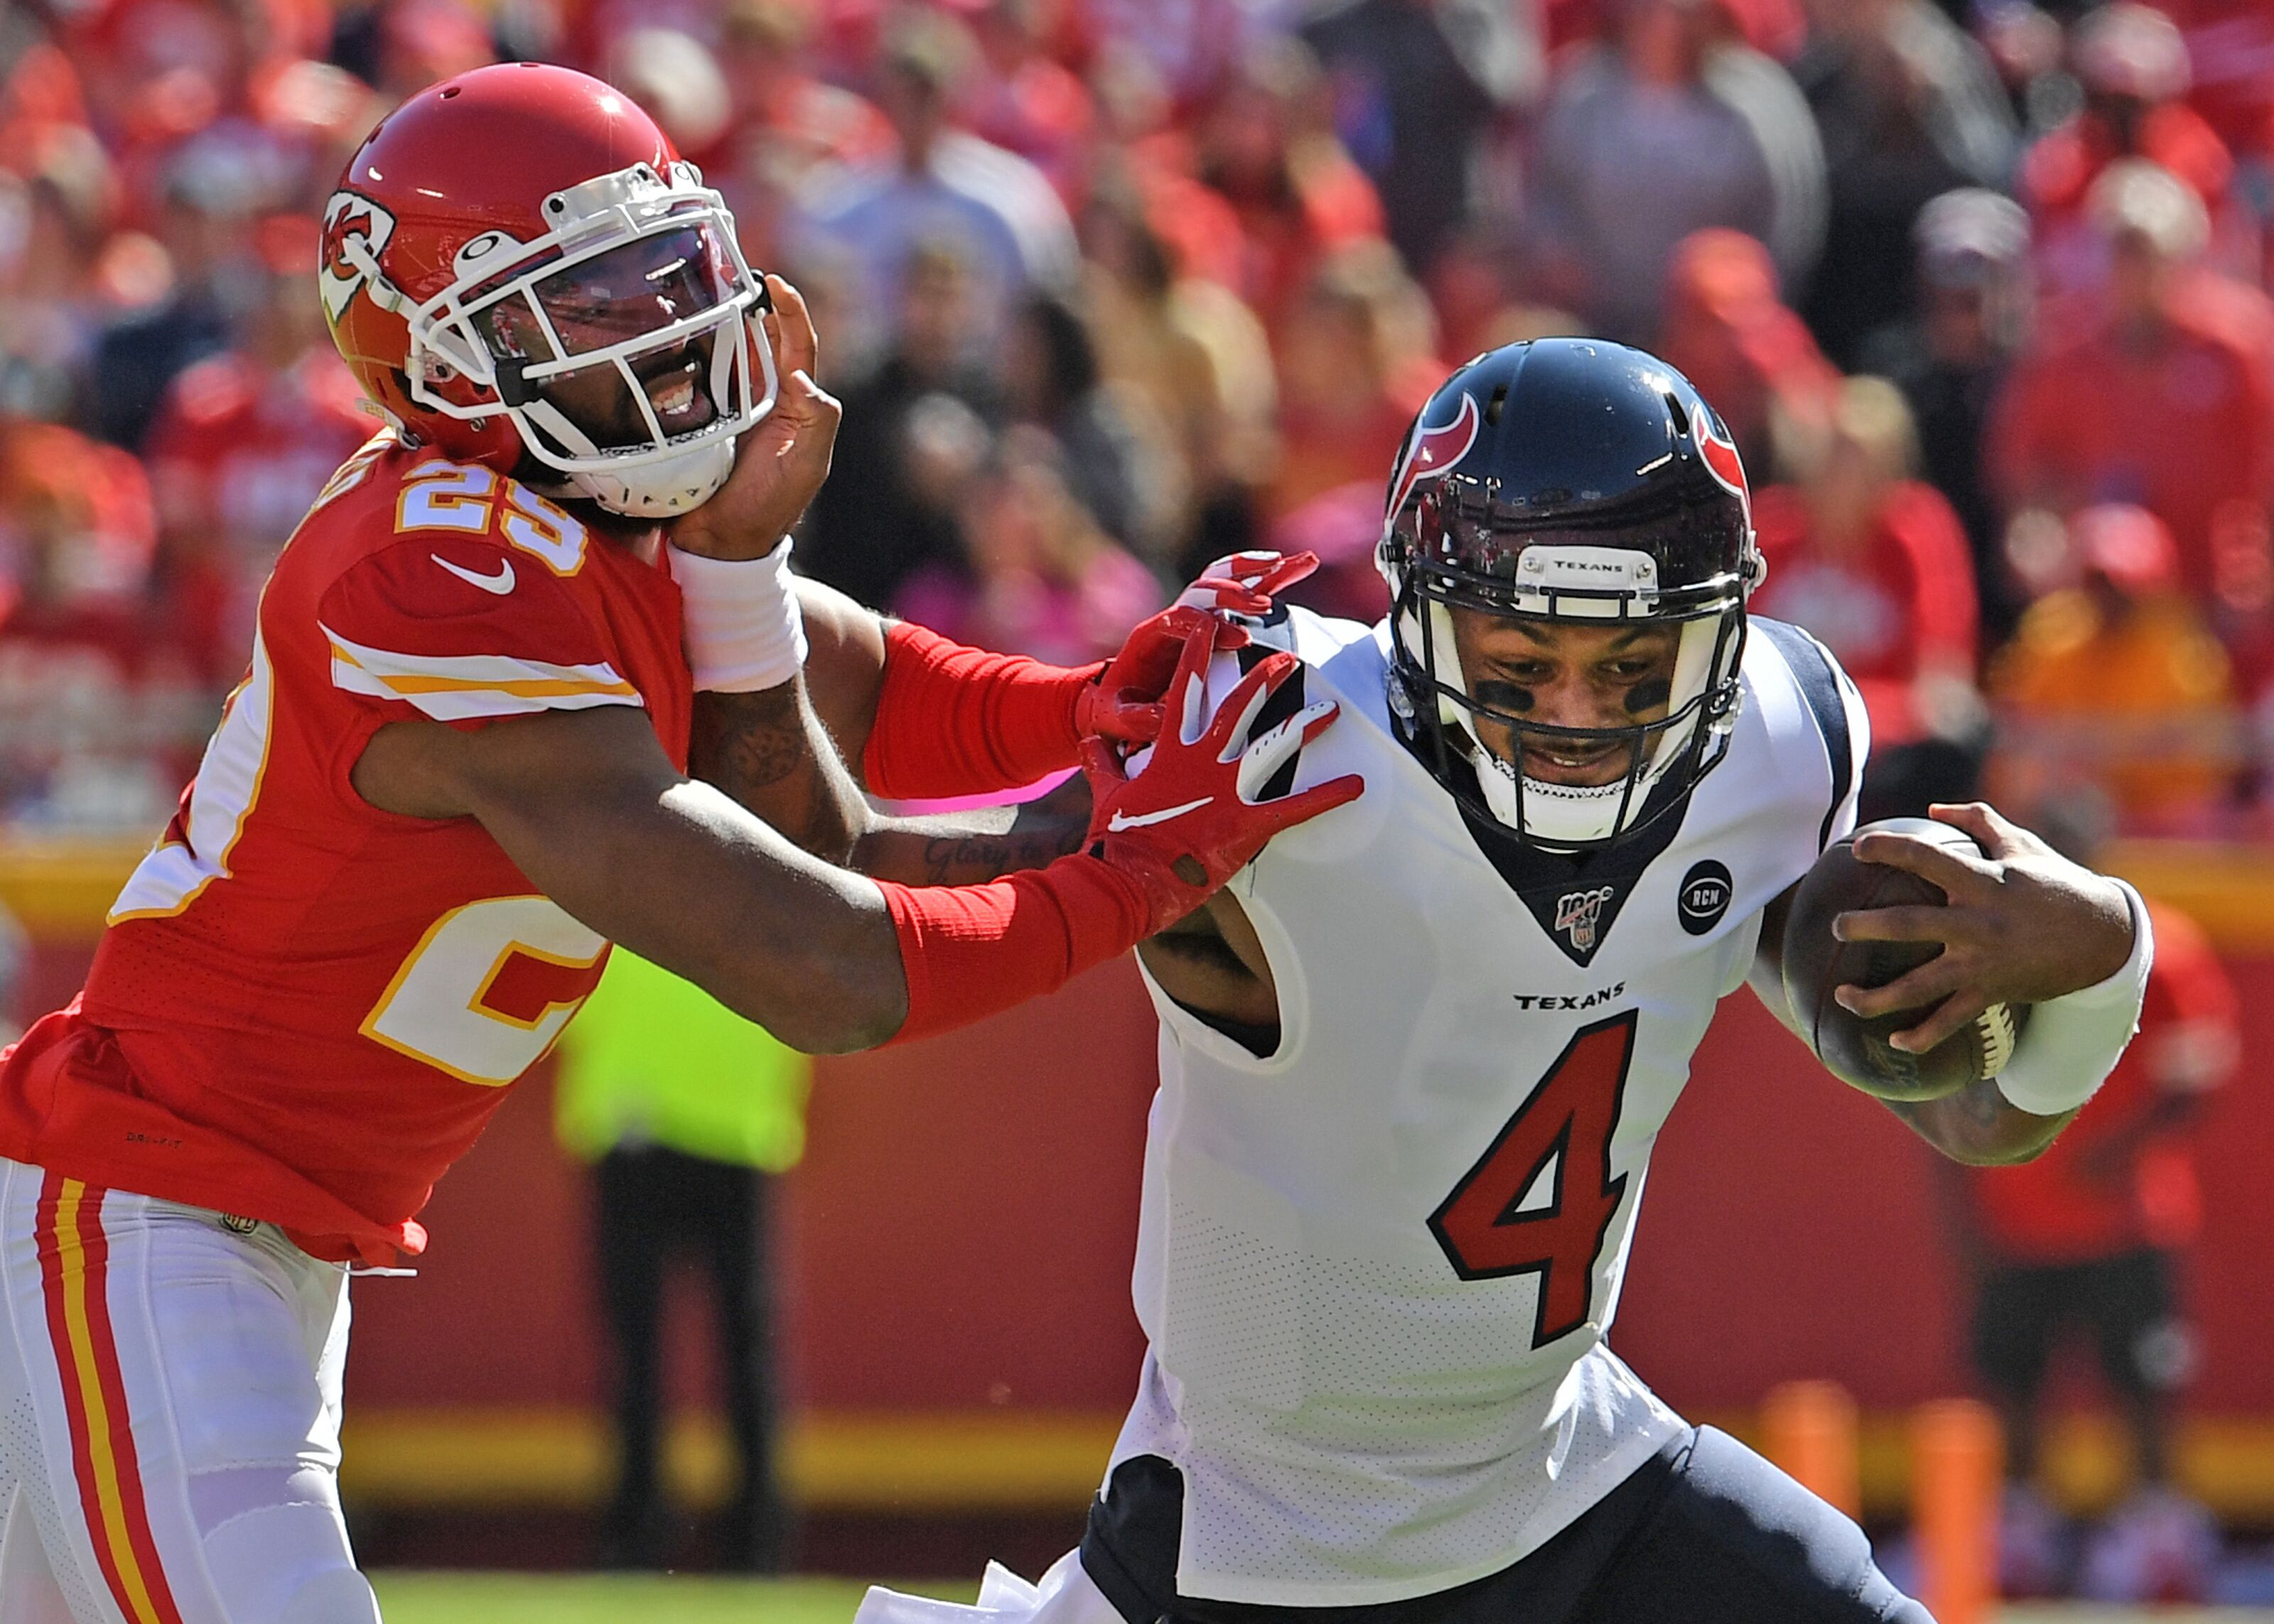 Kansas City Chiefs look downright pitiful in loss to the Houston Texans